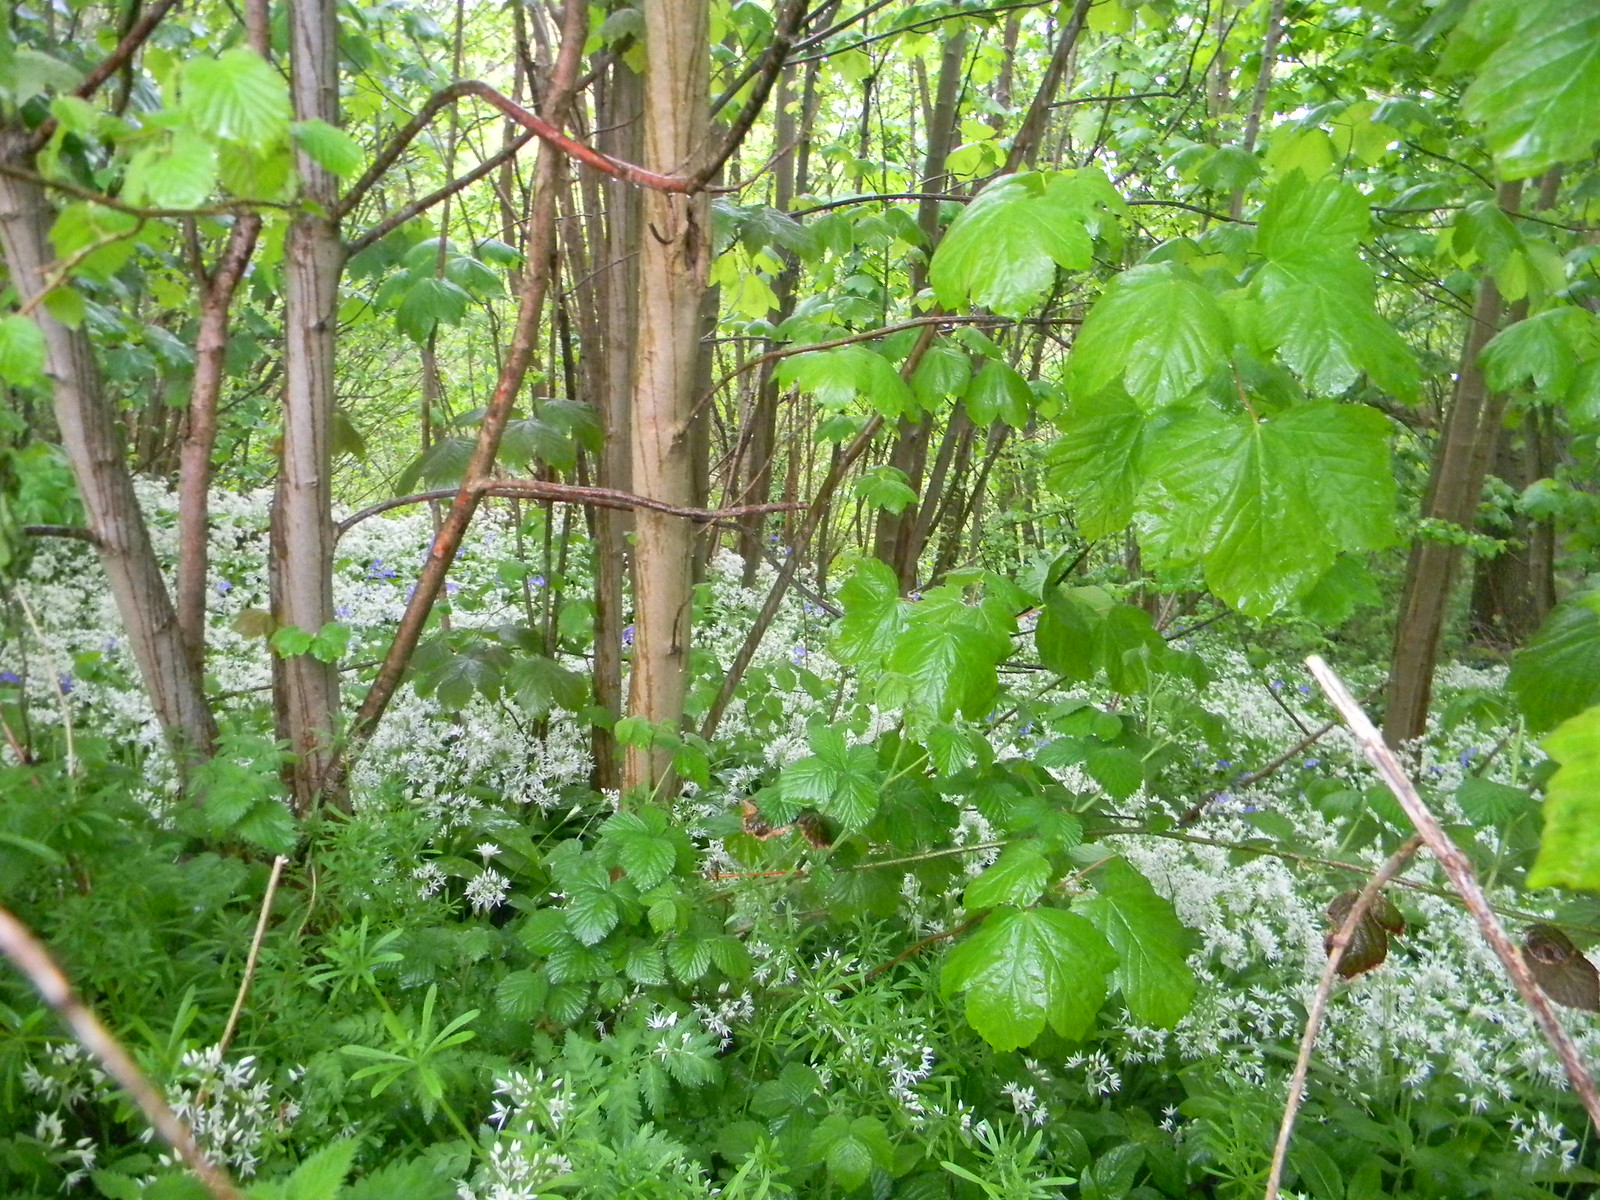 Wild garlic Borough Green to Sevenoaks (composite walk)